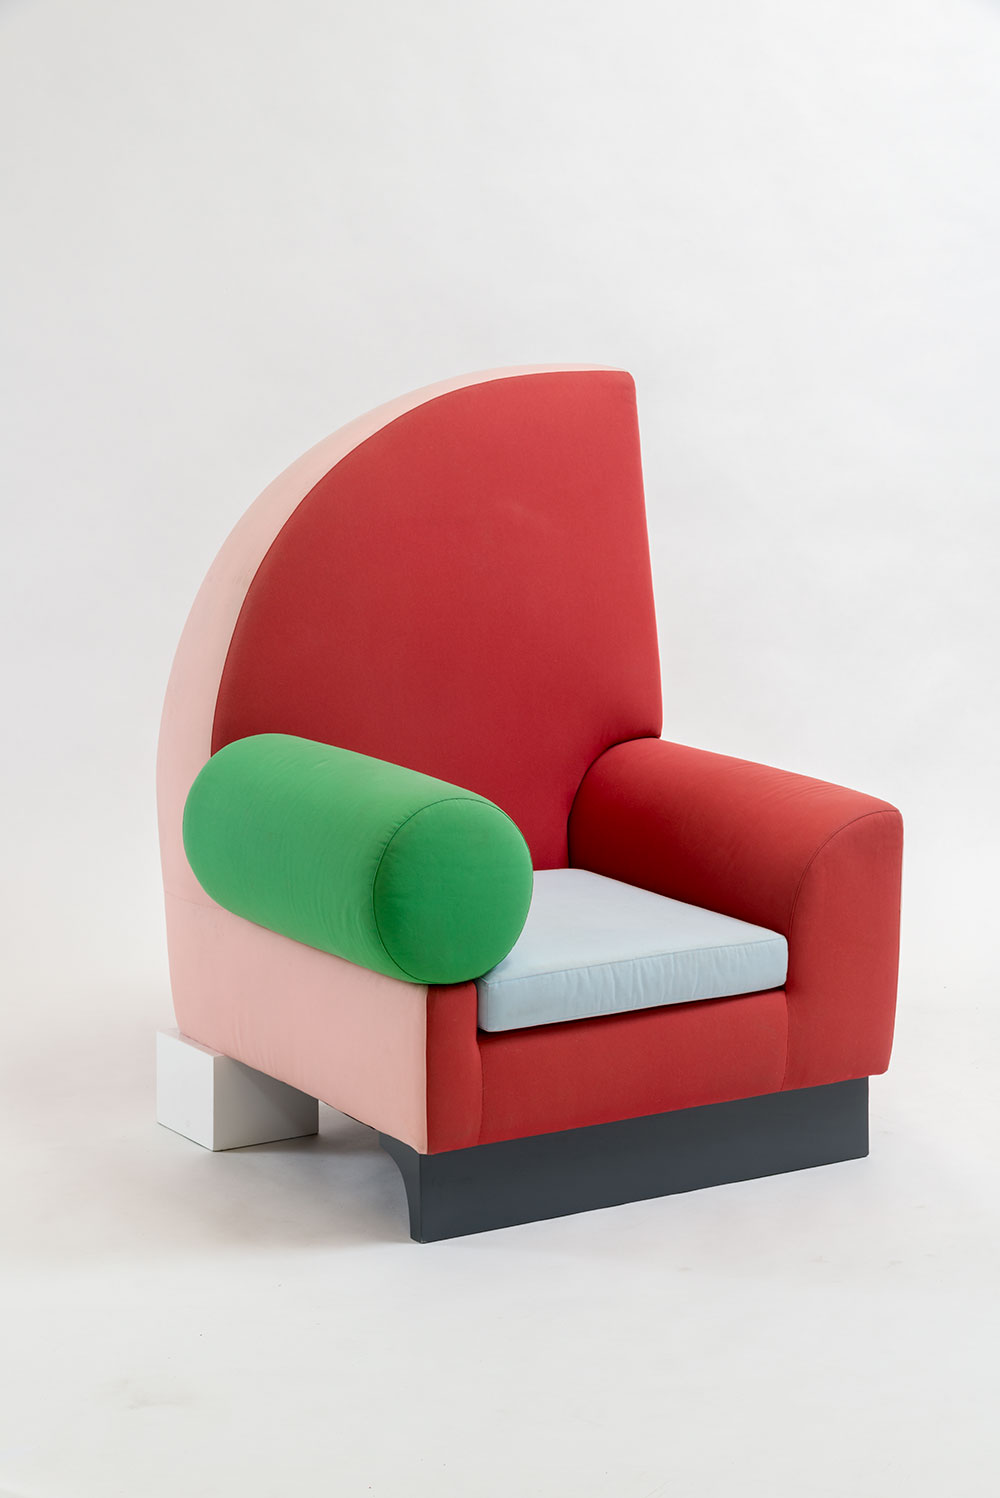 peter shire bel air chair